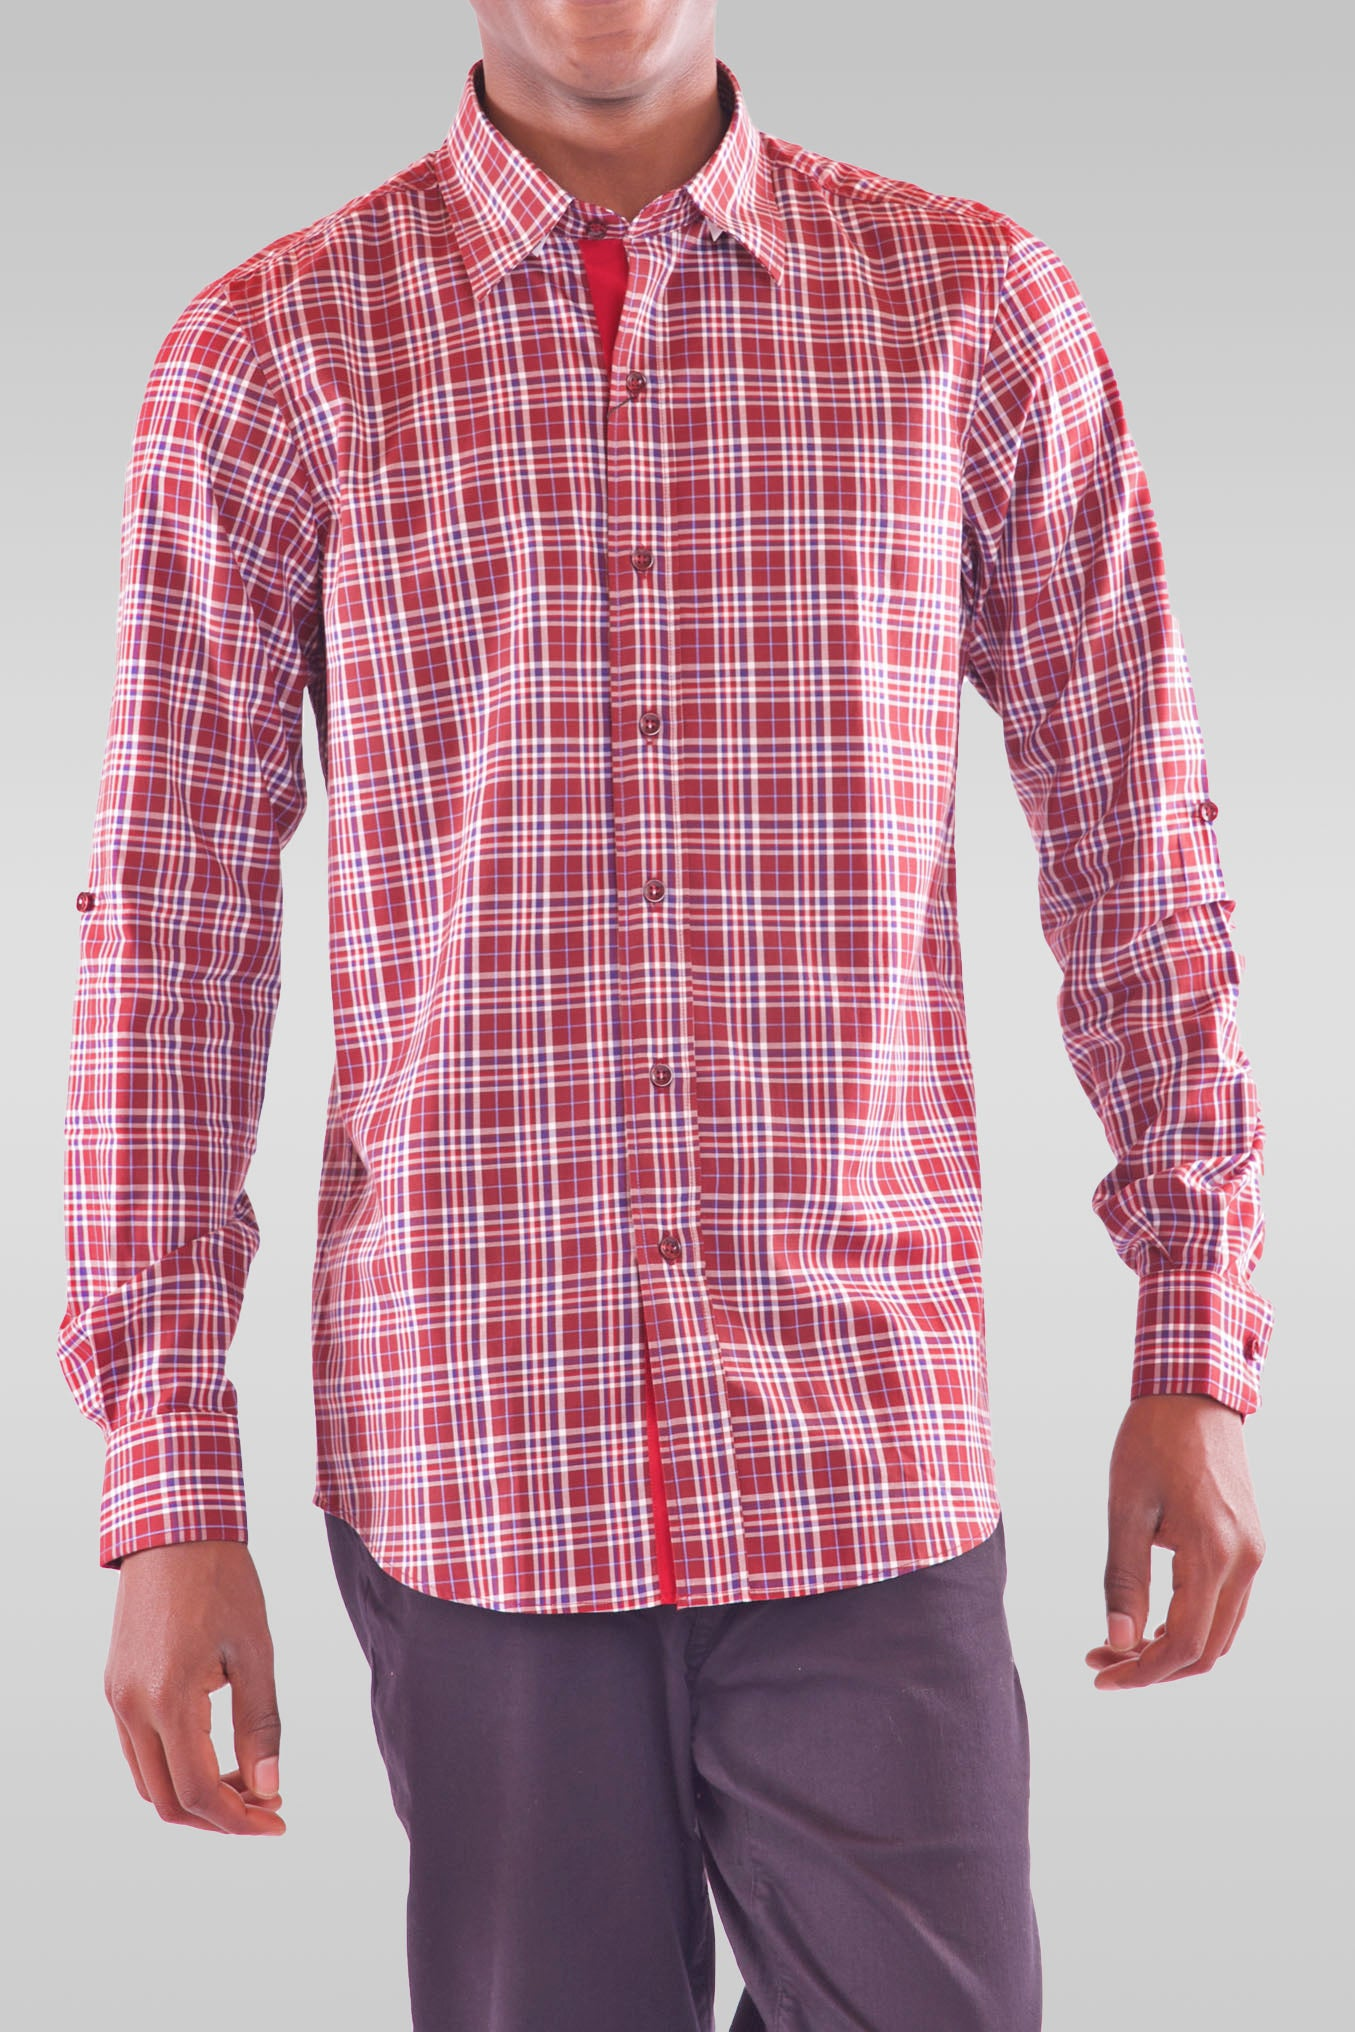 Men's Full Sleeve Red Shirt - Hillmarten